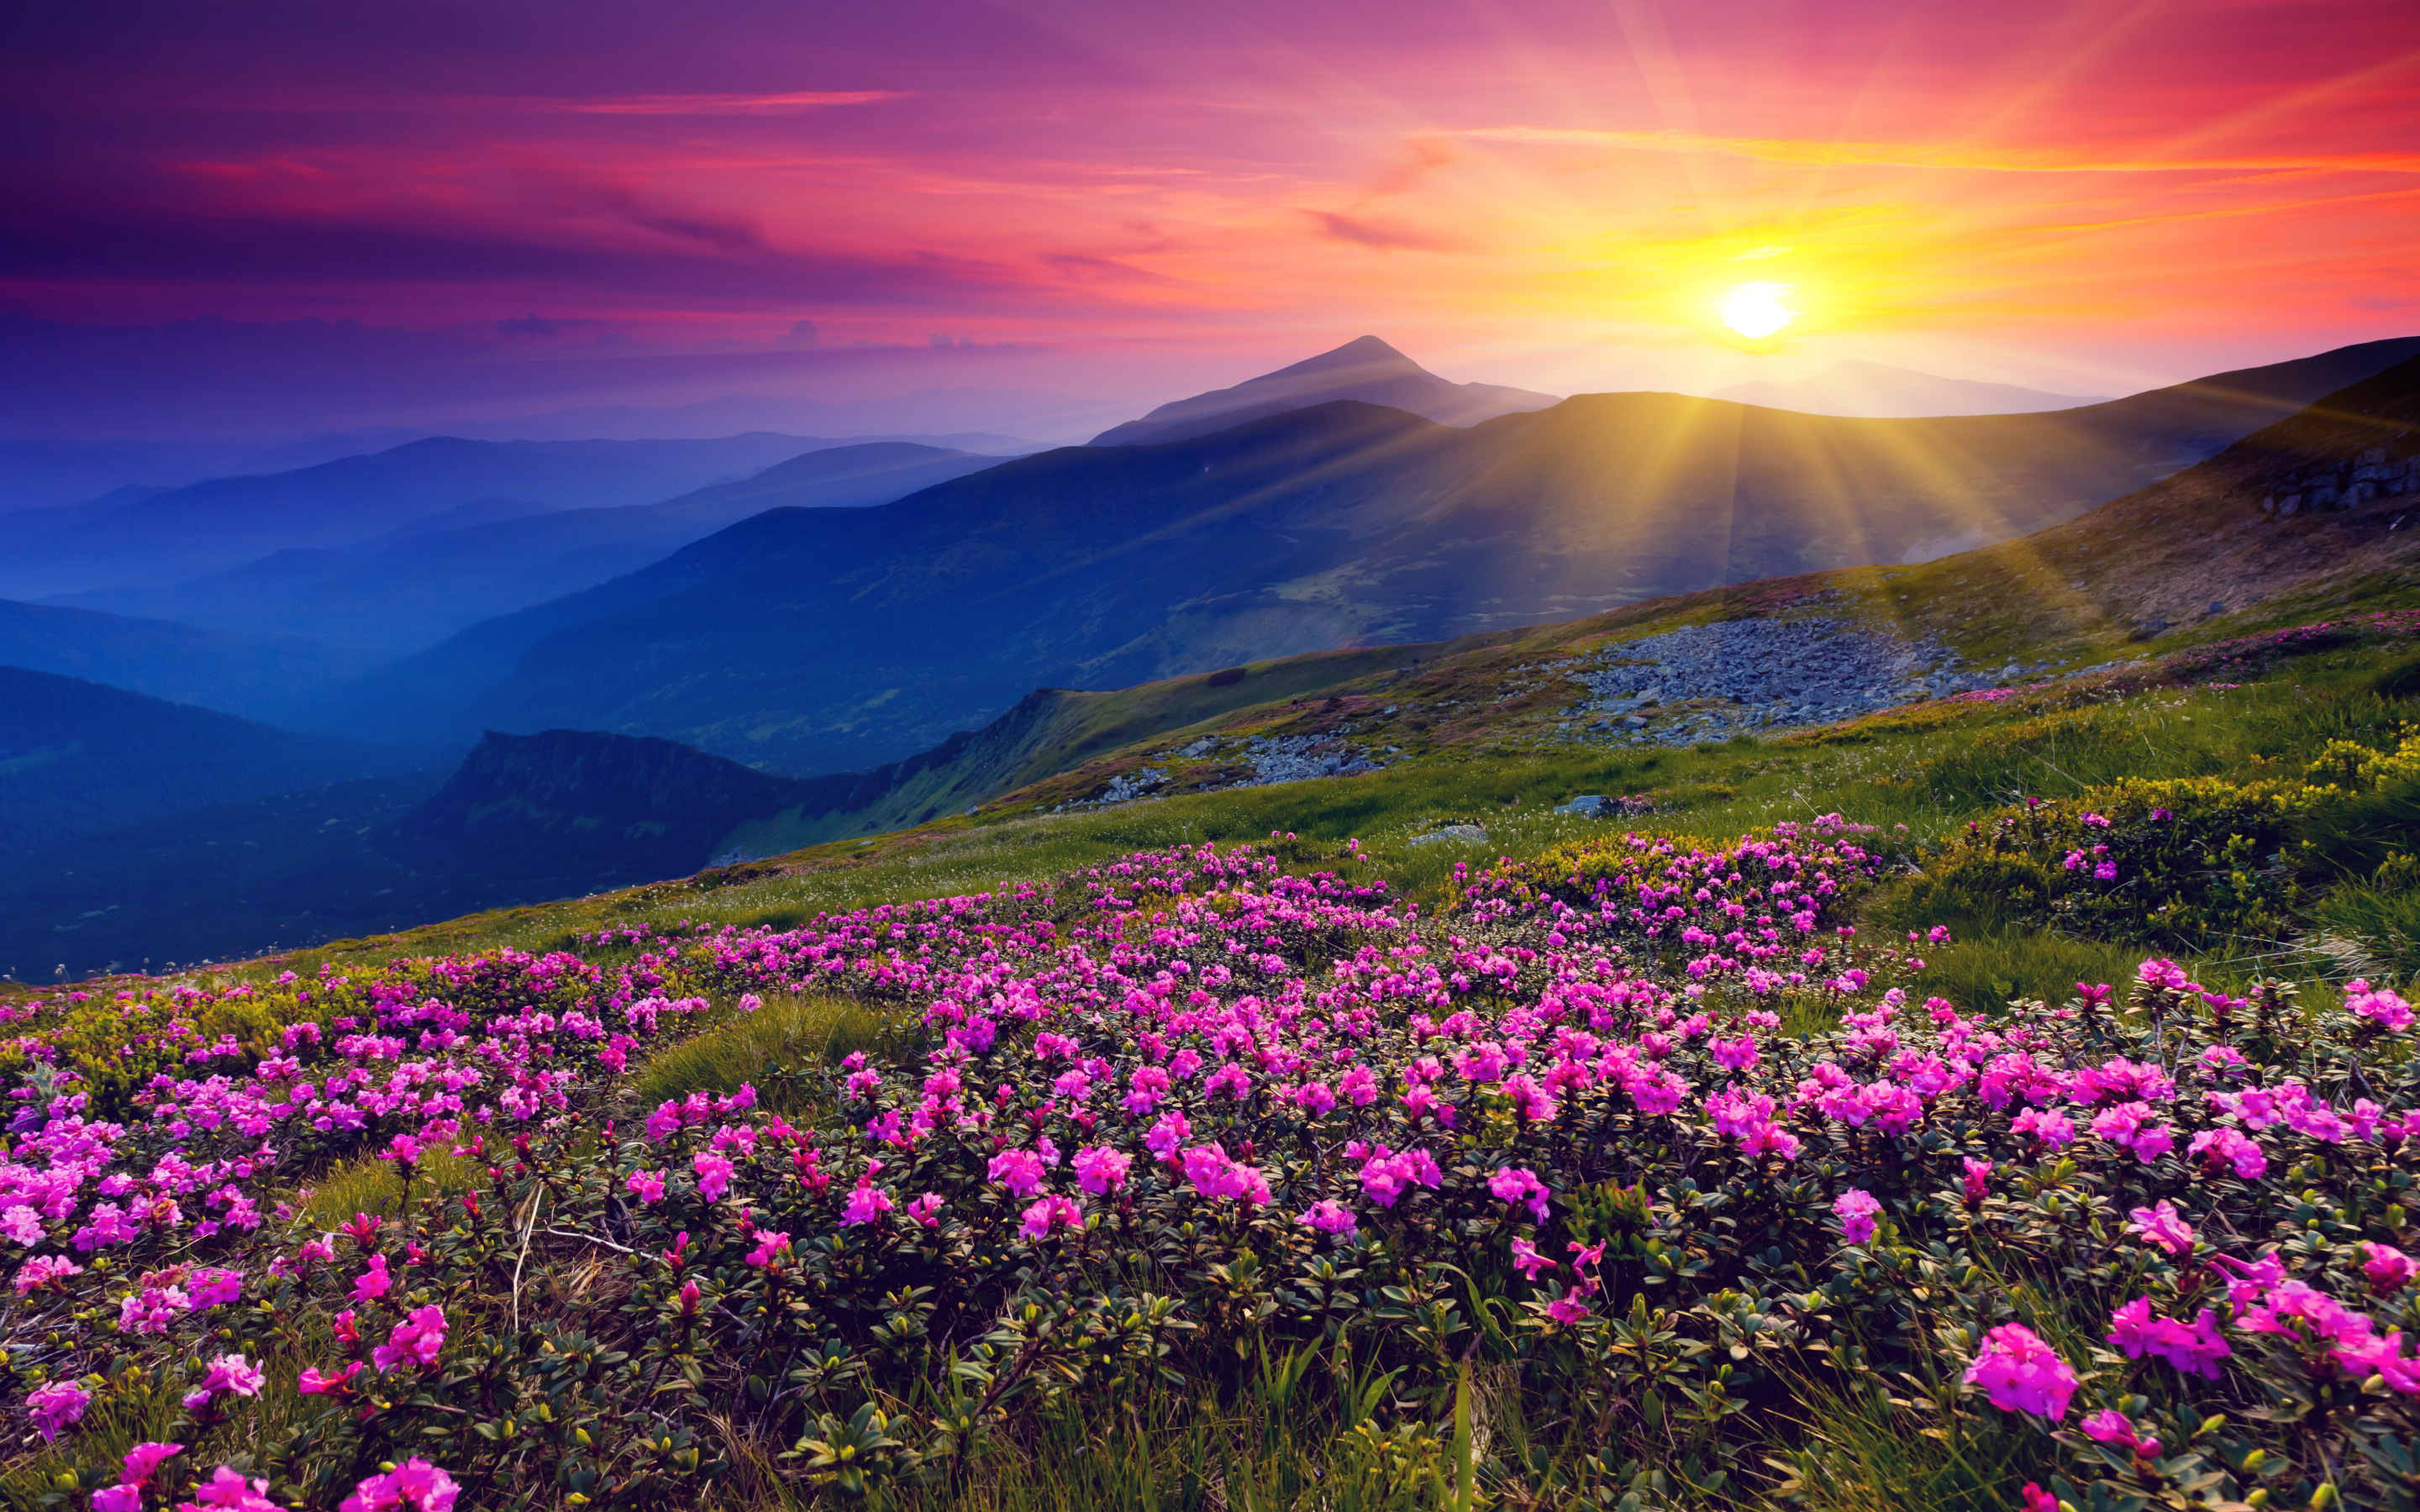 Mountains azalea sunset